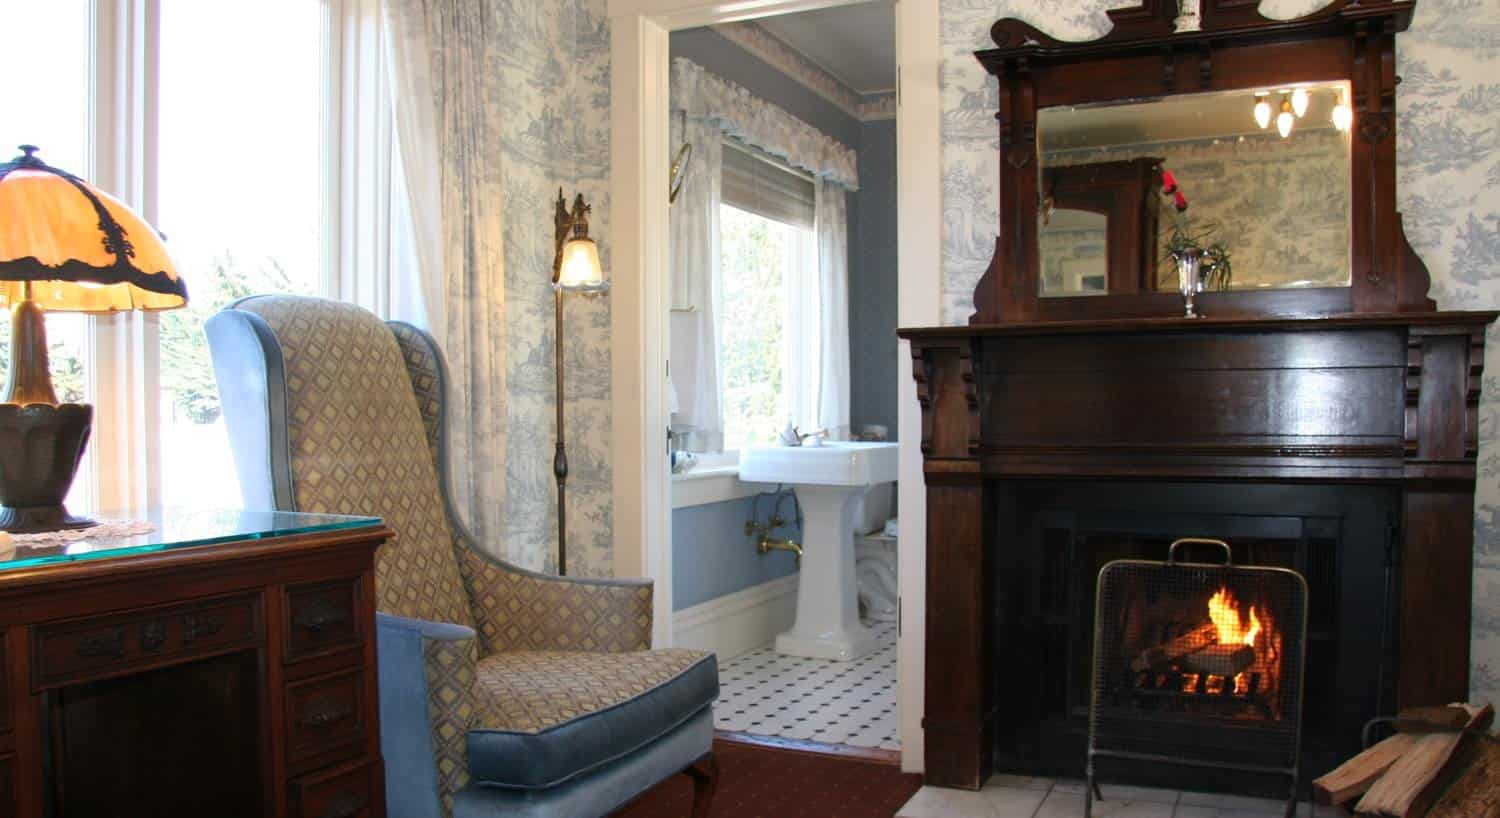 American guest room with blue papered walls, fireplace with wood mantel surround, upholstered chair, desk, large window and attached bath